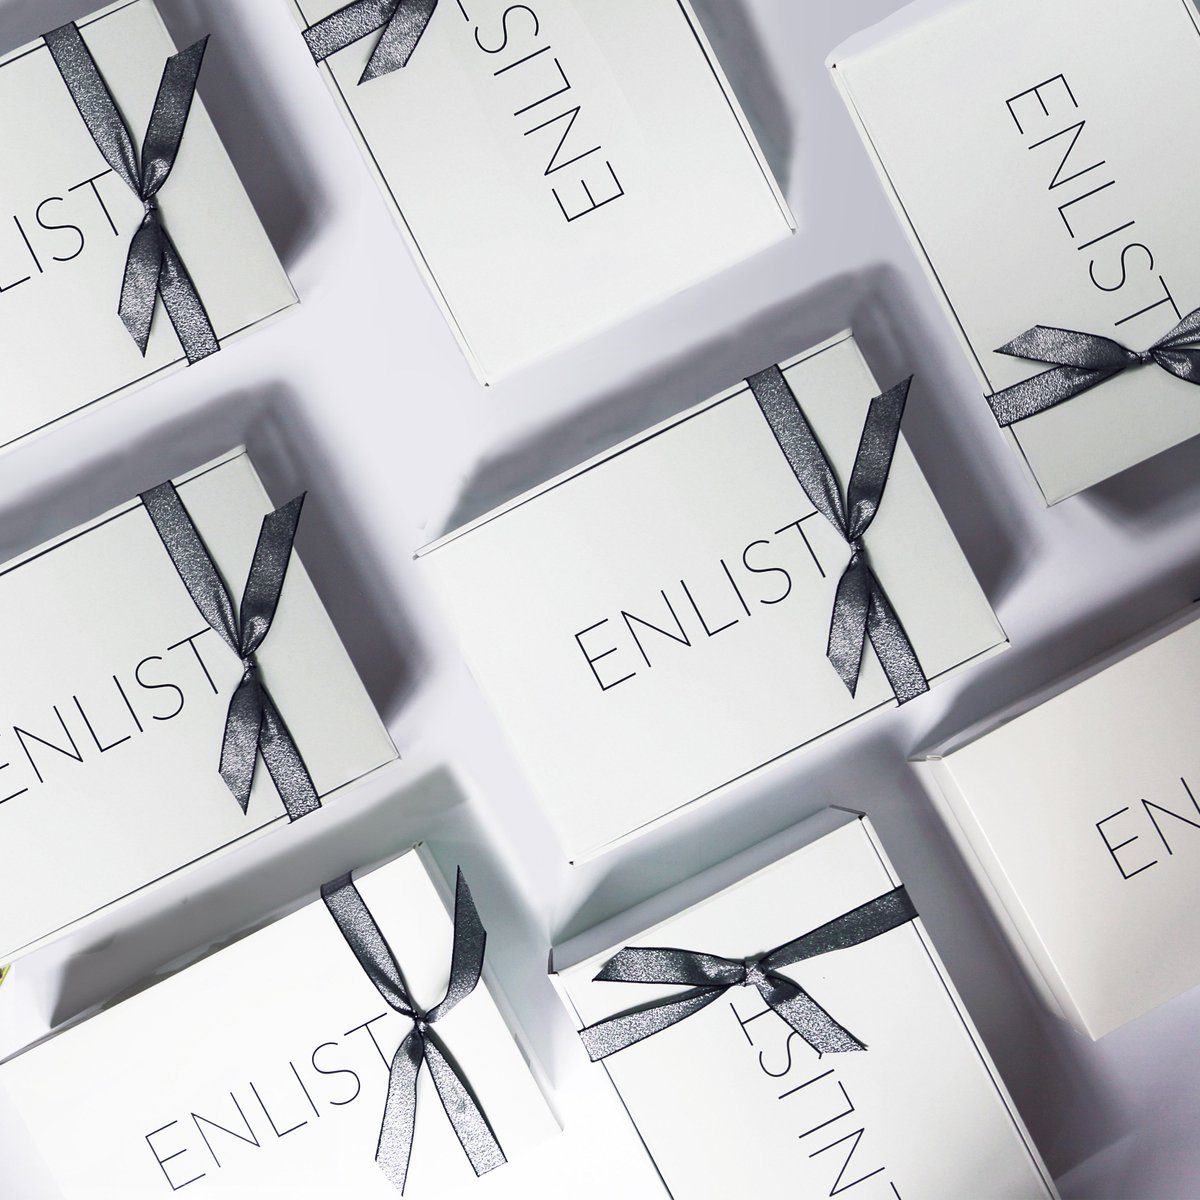 The Christmas countdown has begun.  Whether you are shopping for her, for him or for them, we've got your gifts covered. Shop our gift edit - https://t.co/h3VSI2Kcfm https://t.co/n2jZ4KLDkR